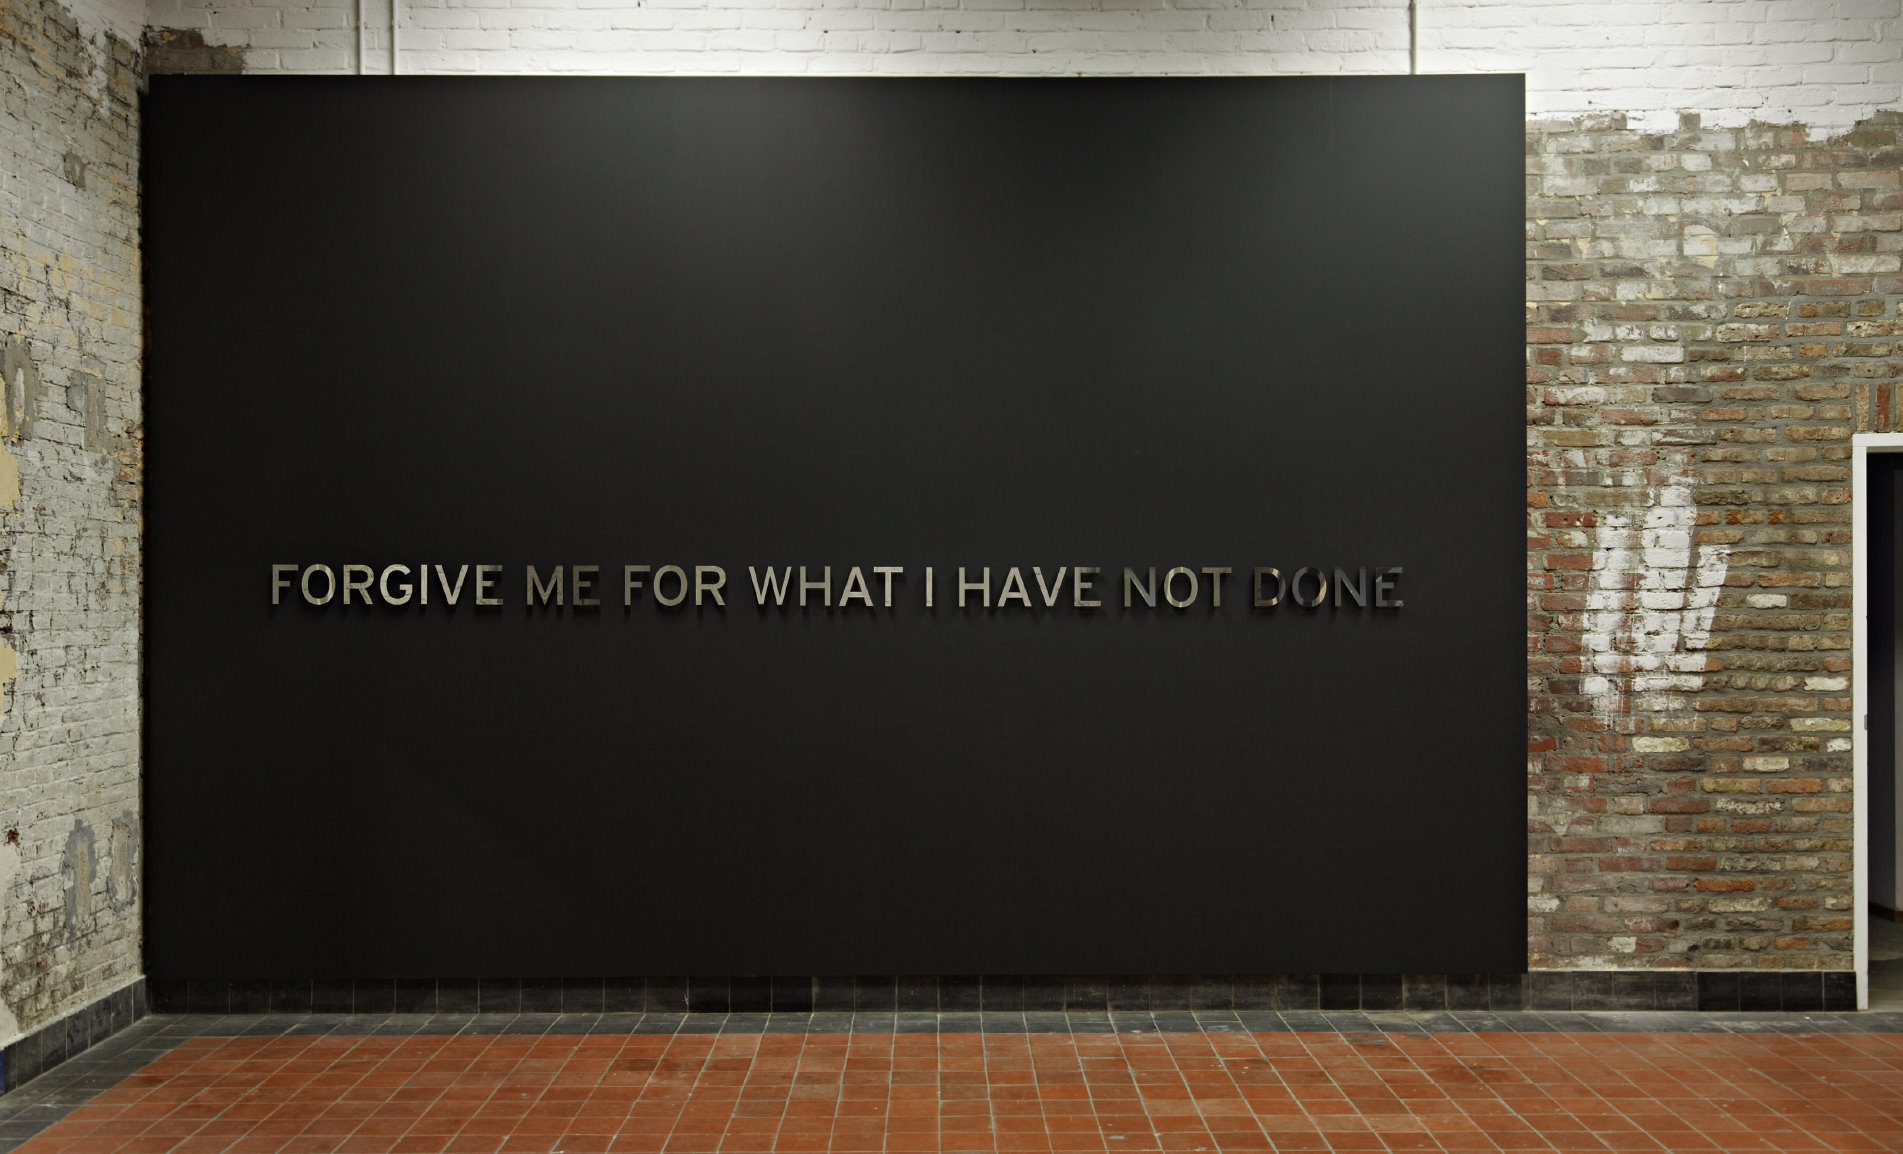 Forgive me for what I have not done, een opdracht van H+F Collection aan Otto Berchem